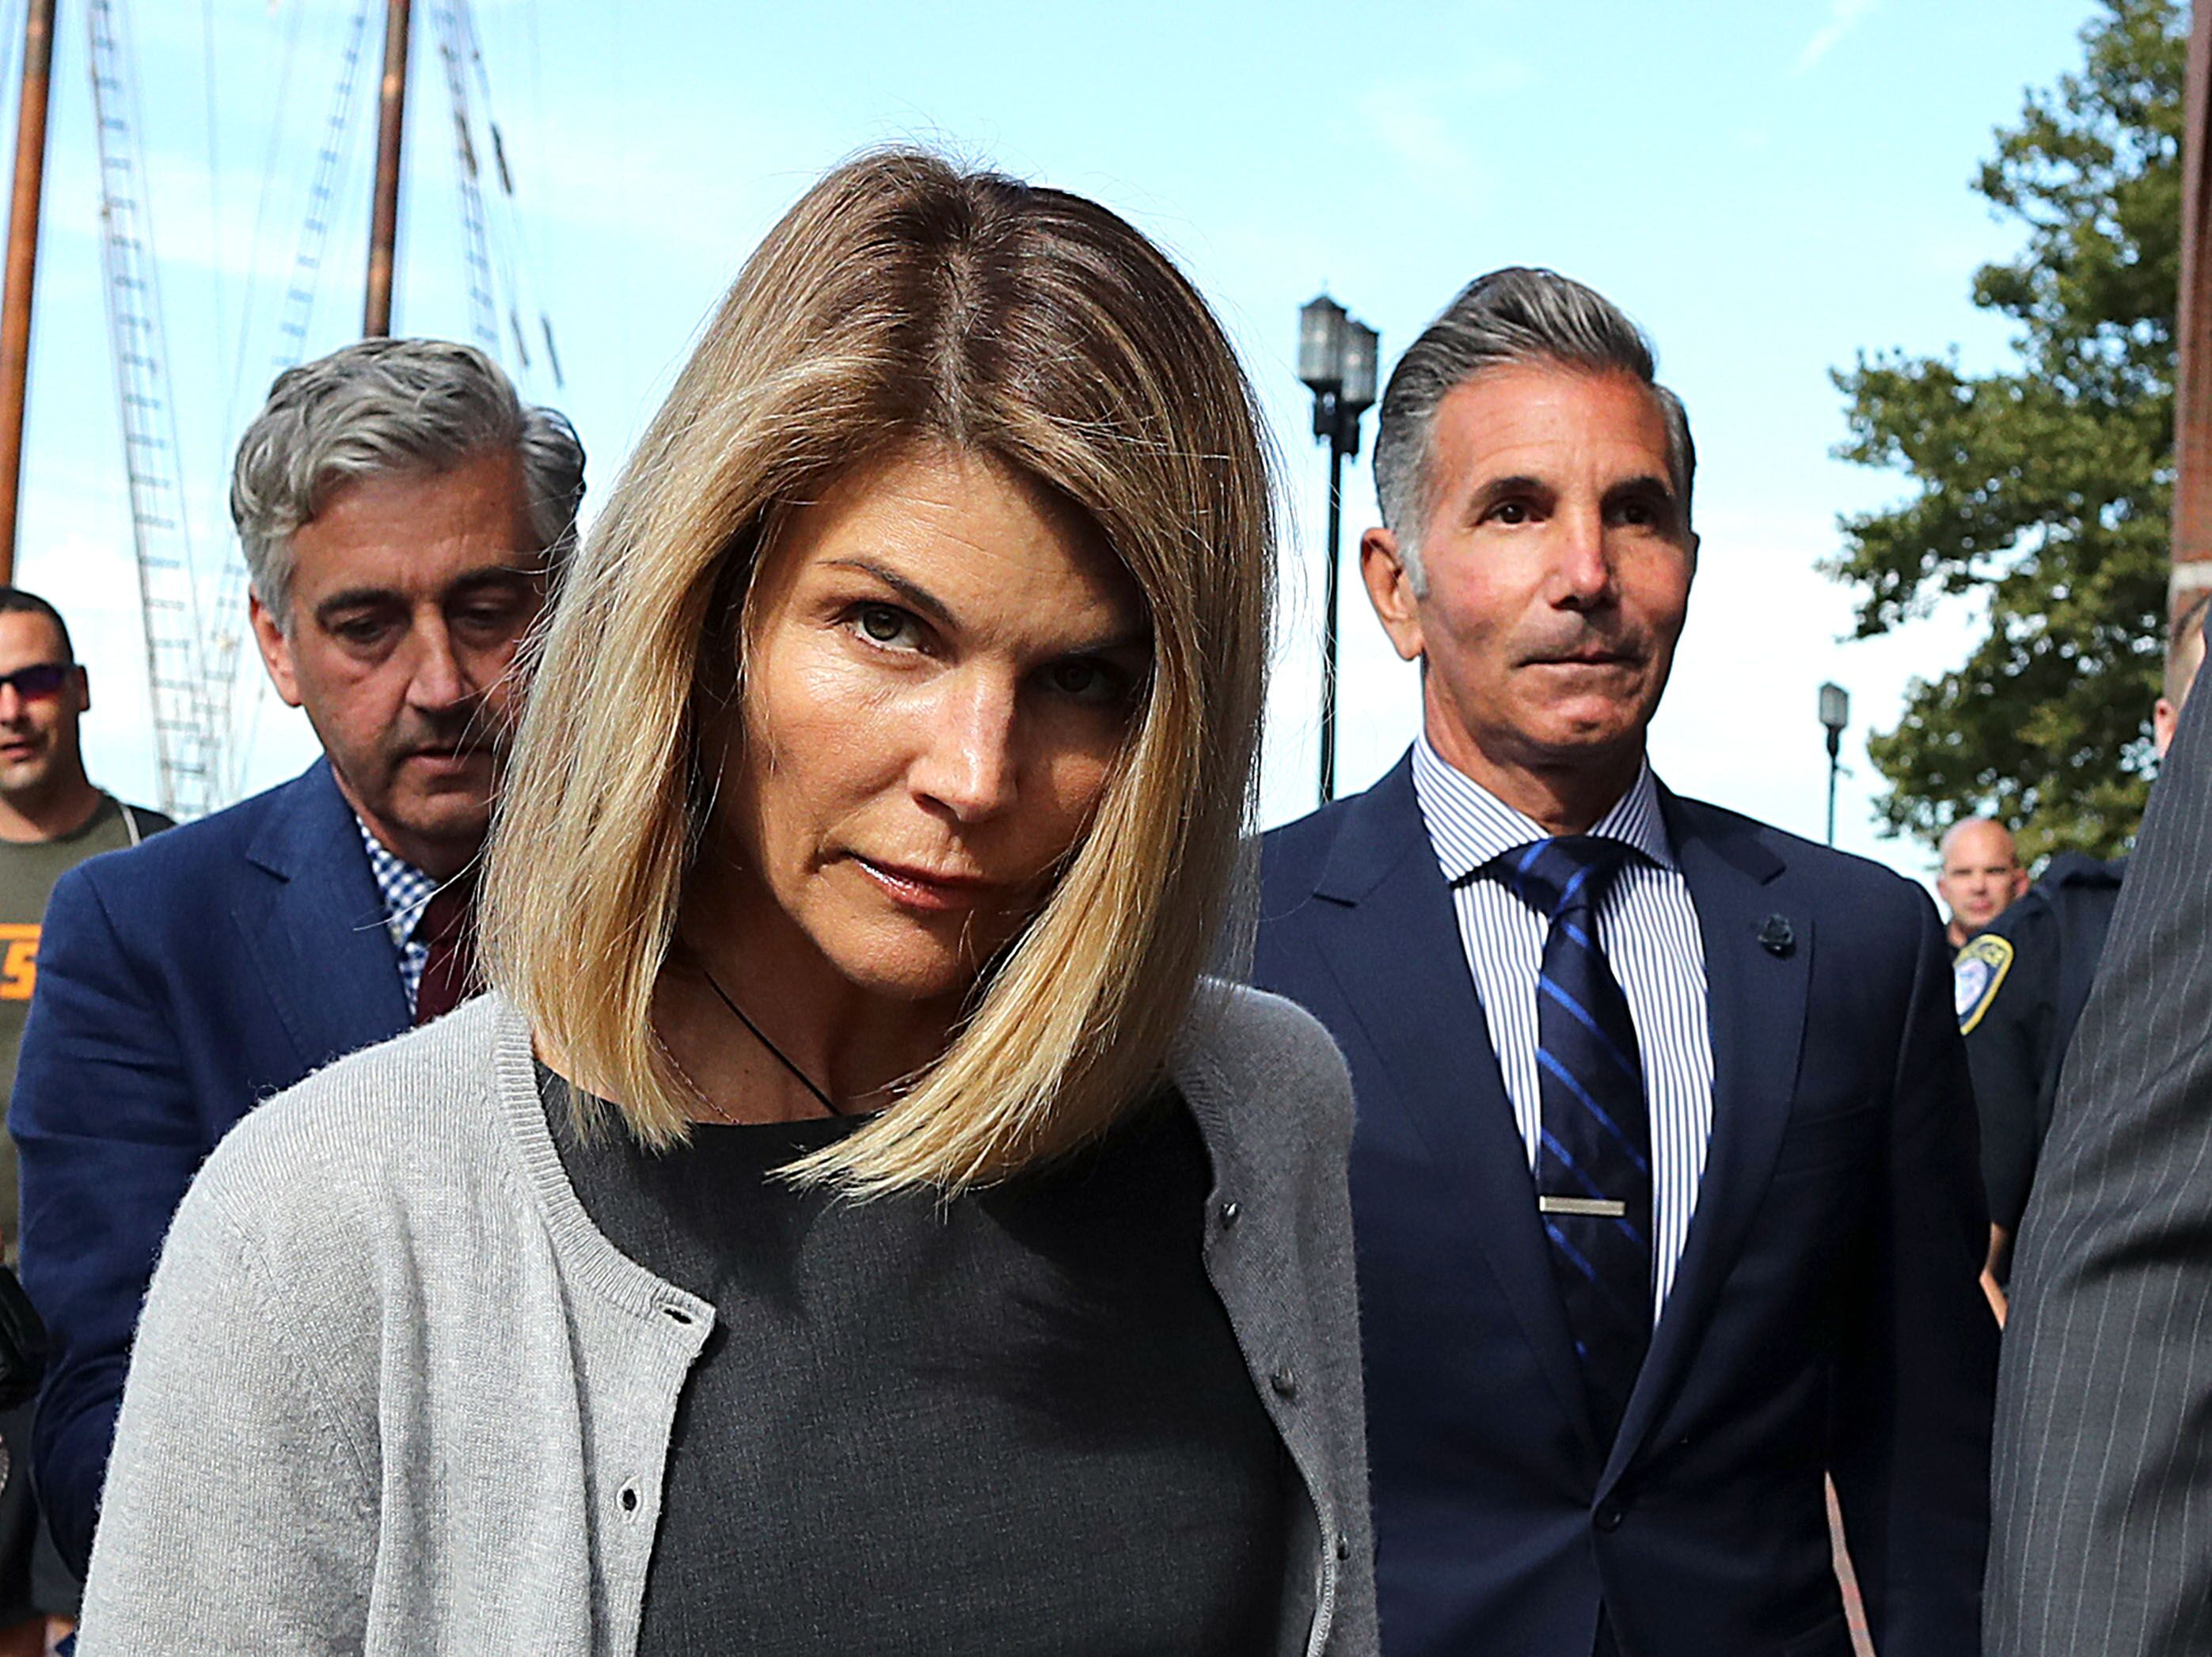 Lori Loughlin and Mossimo Giannulli leave the John Joseph Moakley United States Courthouse in Boston on August 27, 2019. | Source: Getty Images